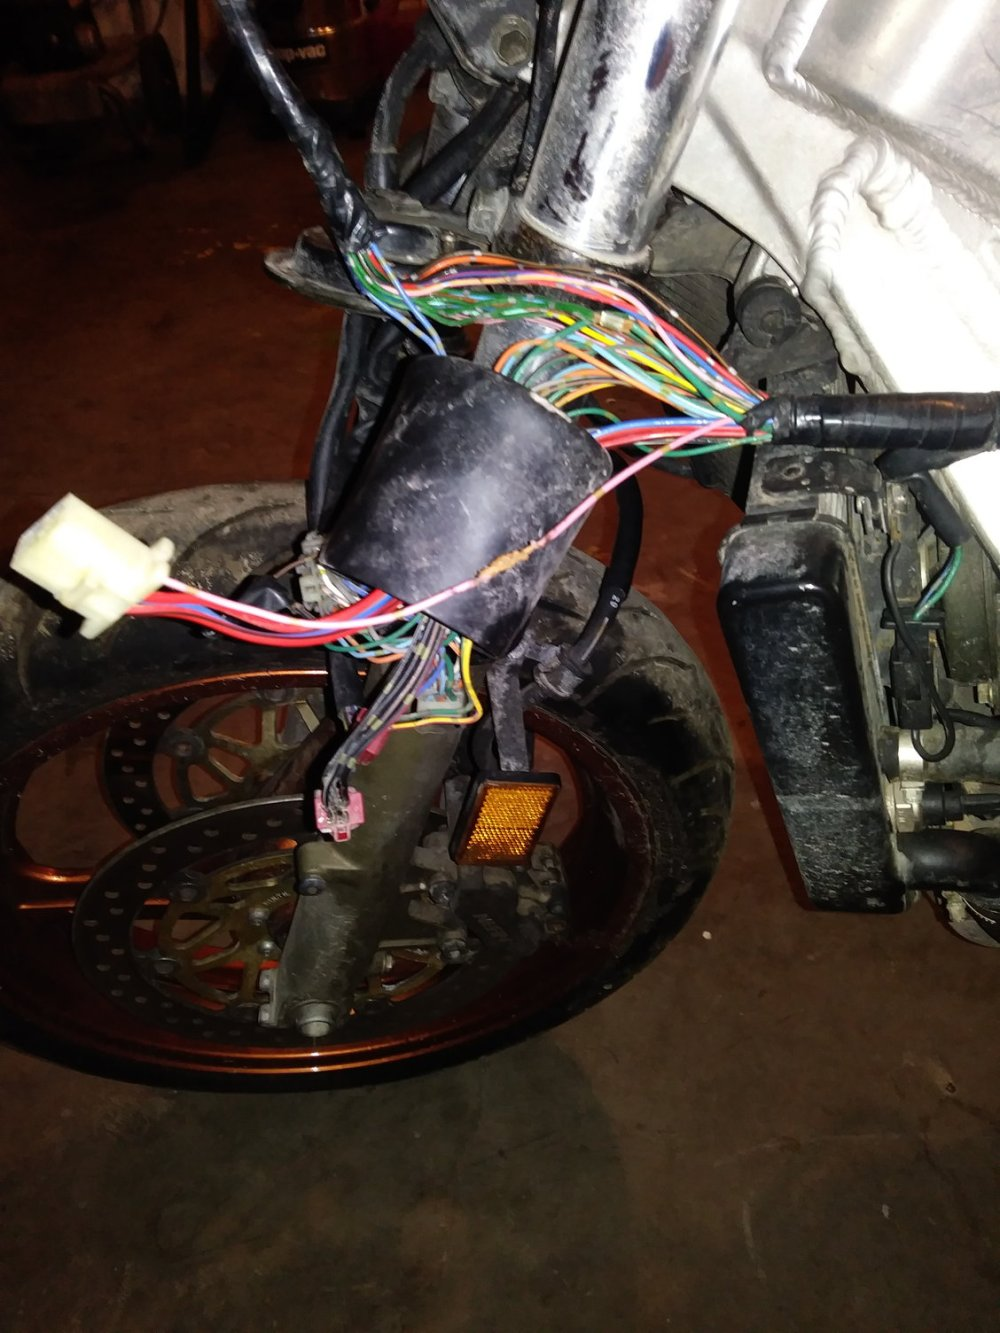 medium resolution of  time dealing with a street bike and other than the basics i don t quite know much about bikes below are pictures of the wire i was wondering about